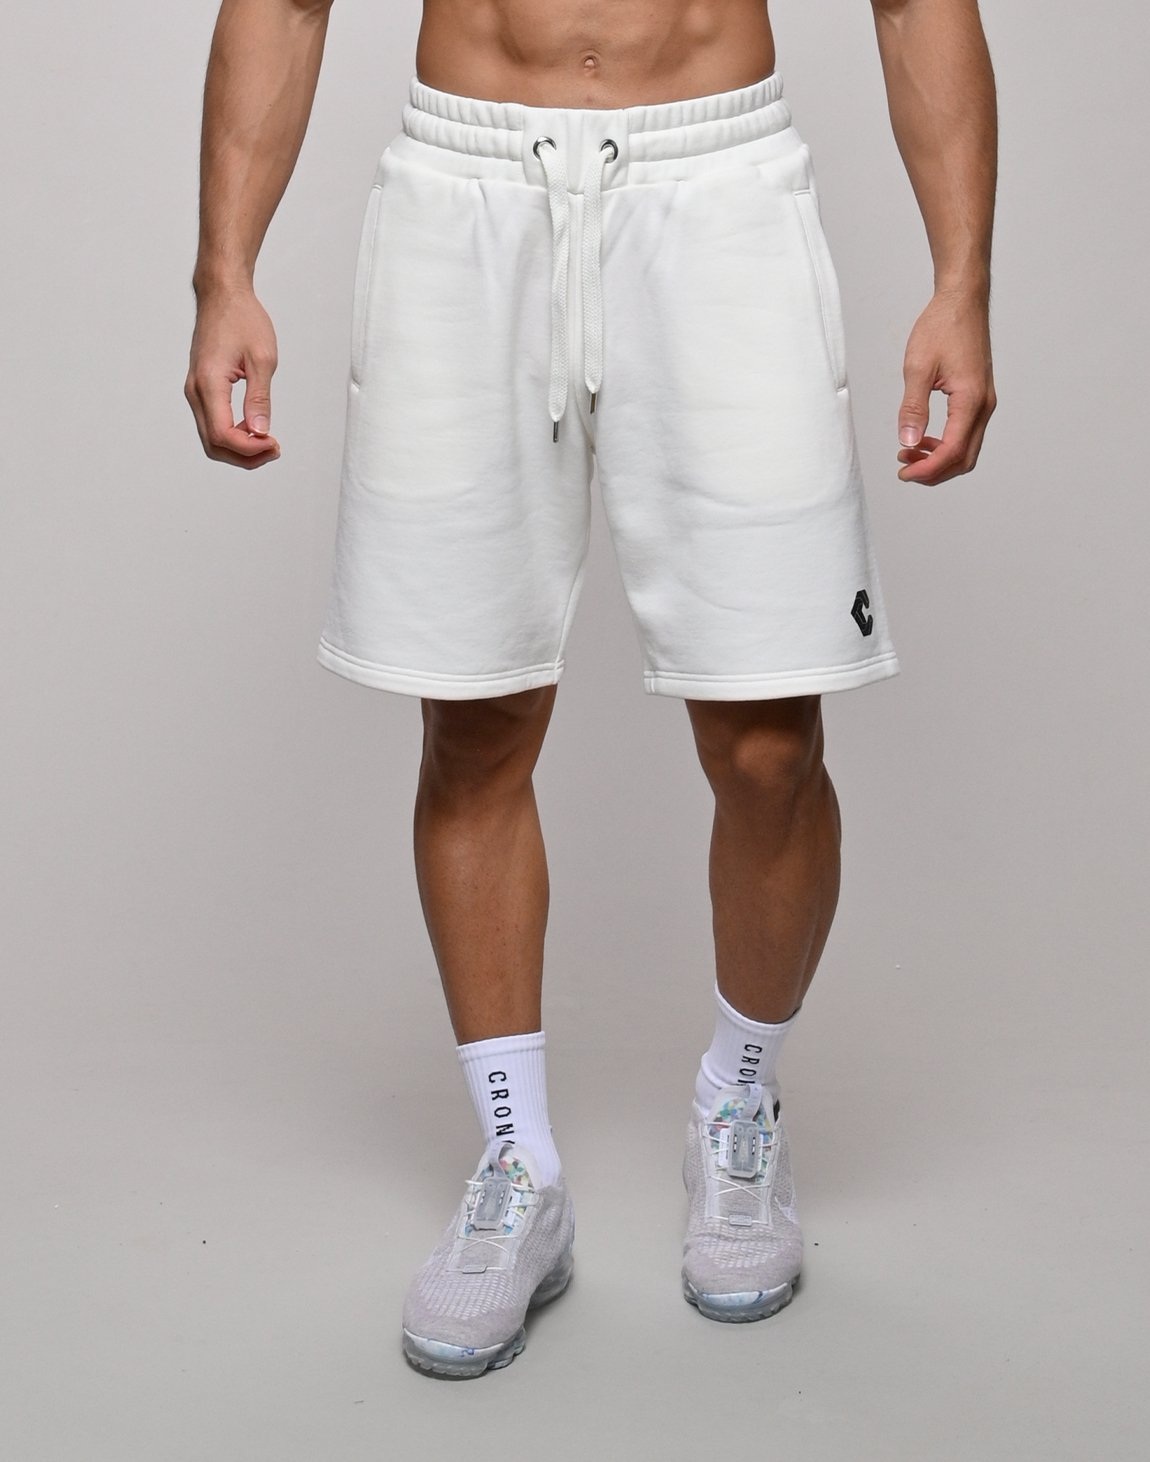 <img class='new_mark_img1' src='https://img.shop-pro.jp/img/new/icons1.gif' style='border:none;display:inline;margin:0px;padding:0px;width:auto;' />CRONOS BACK THREAD SHORTS【WHITE】